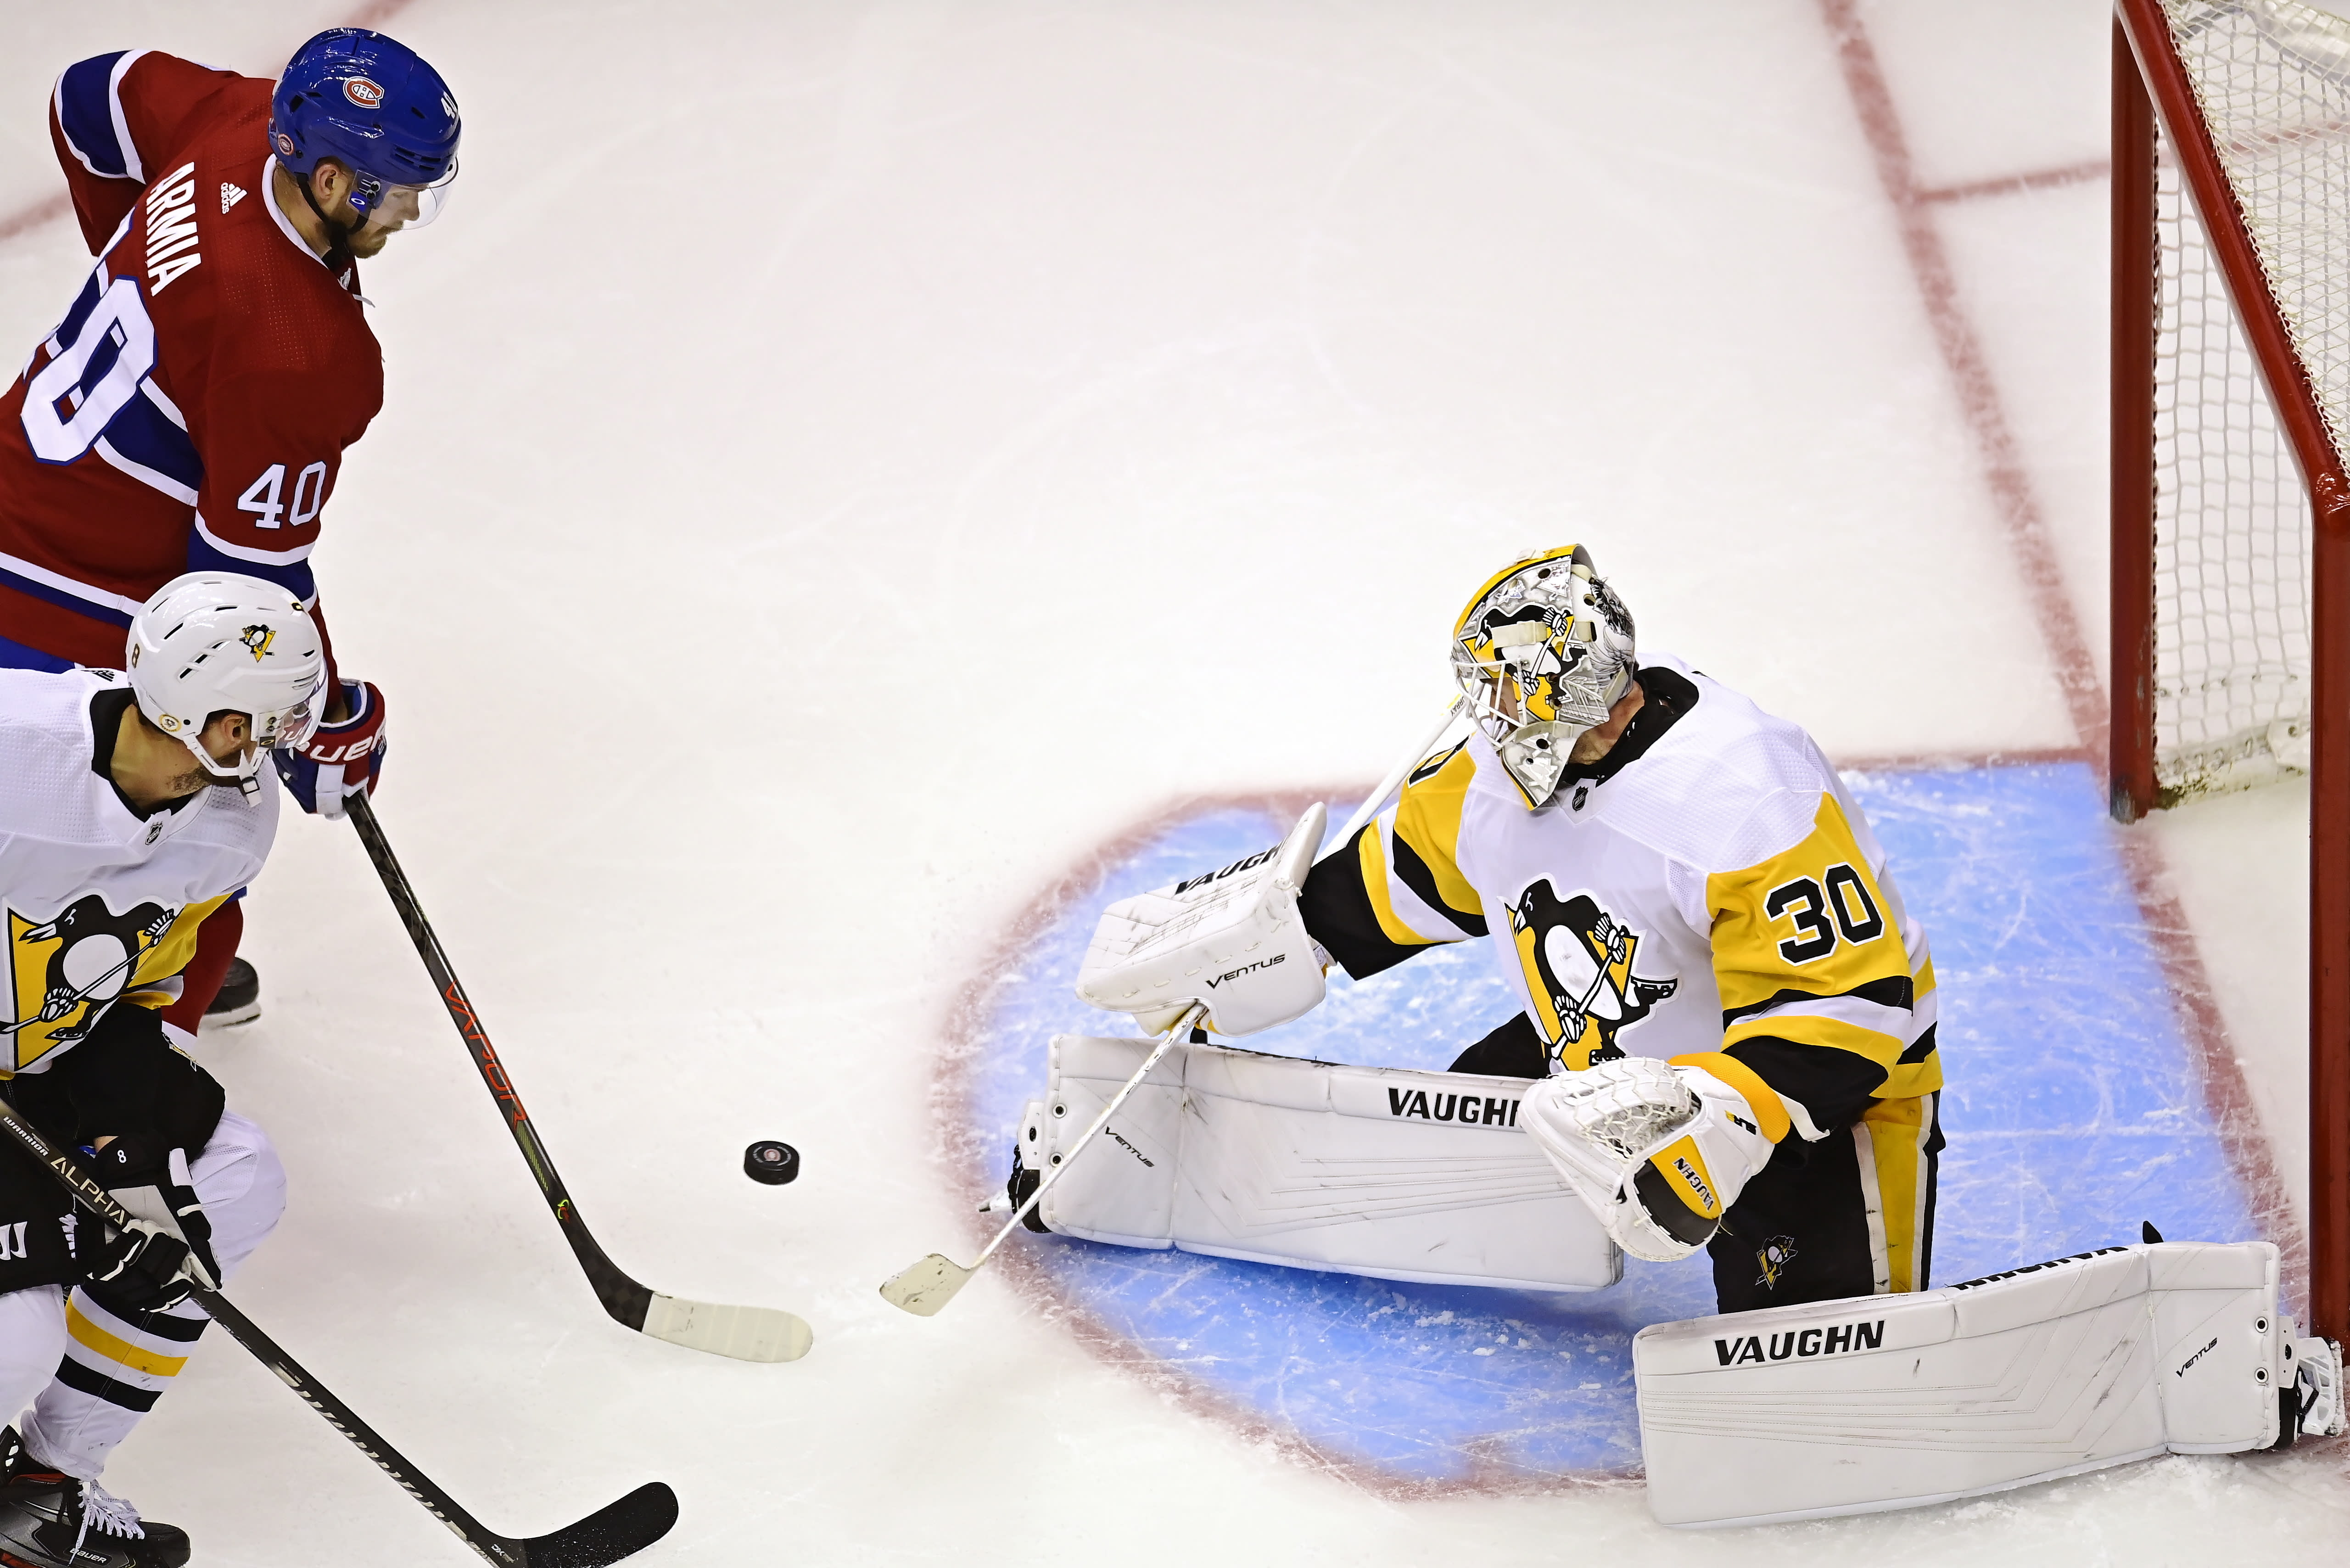 Pittsburgh Penguins goaltender Matt Murray (30) makes a save on Montreal Canadiens' Joel Armia (40) during the second period of an NHL hockey playoff game Wednesday, Aug. 5, 2020 in Toronto. (Frank Gunn/The Canadian Press via AP)